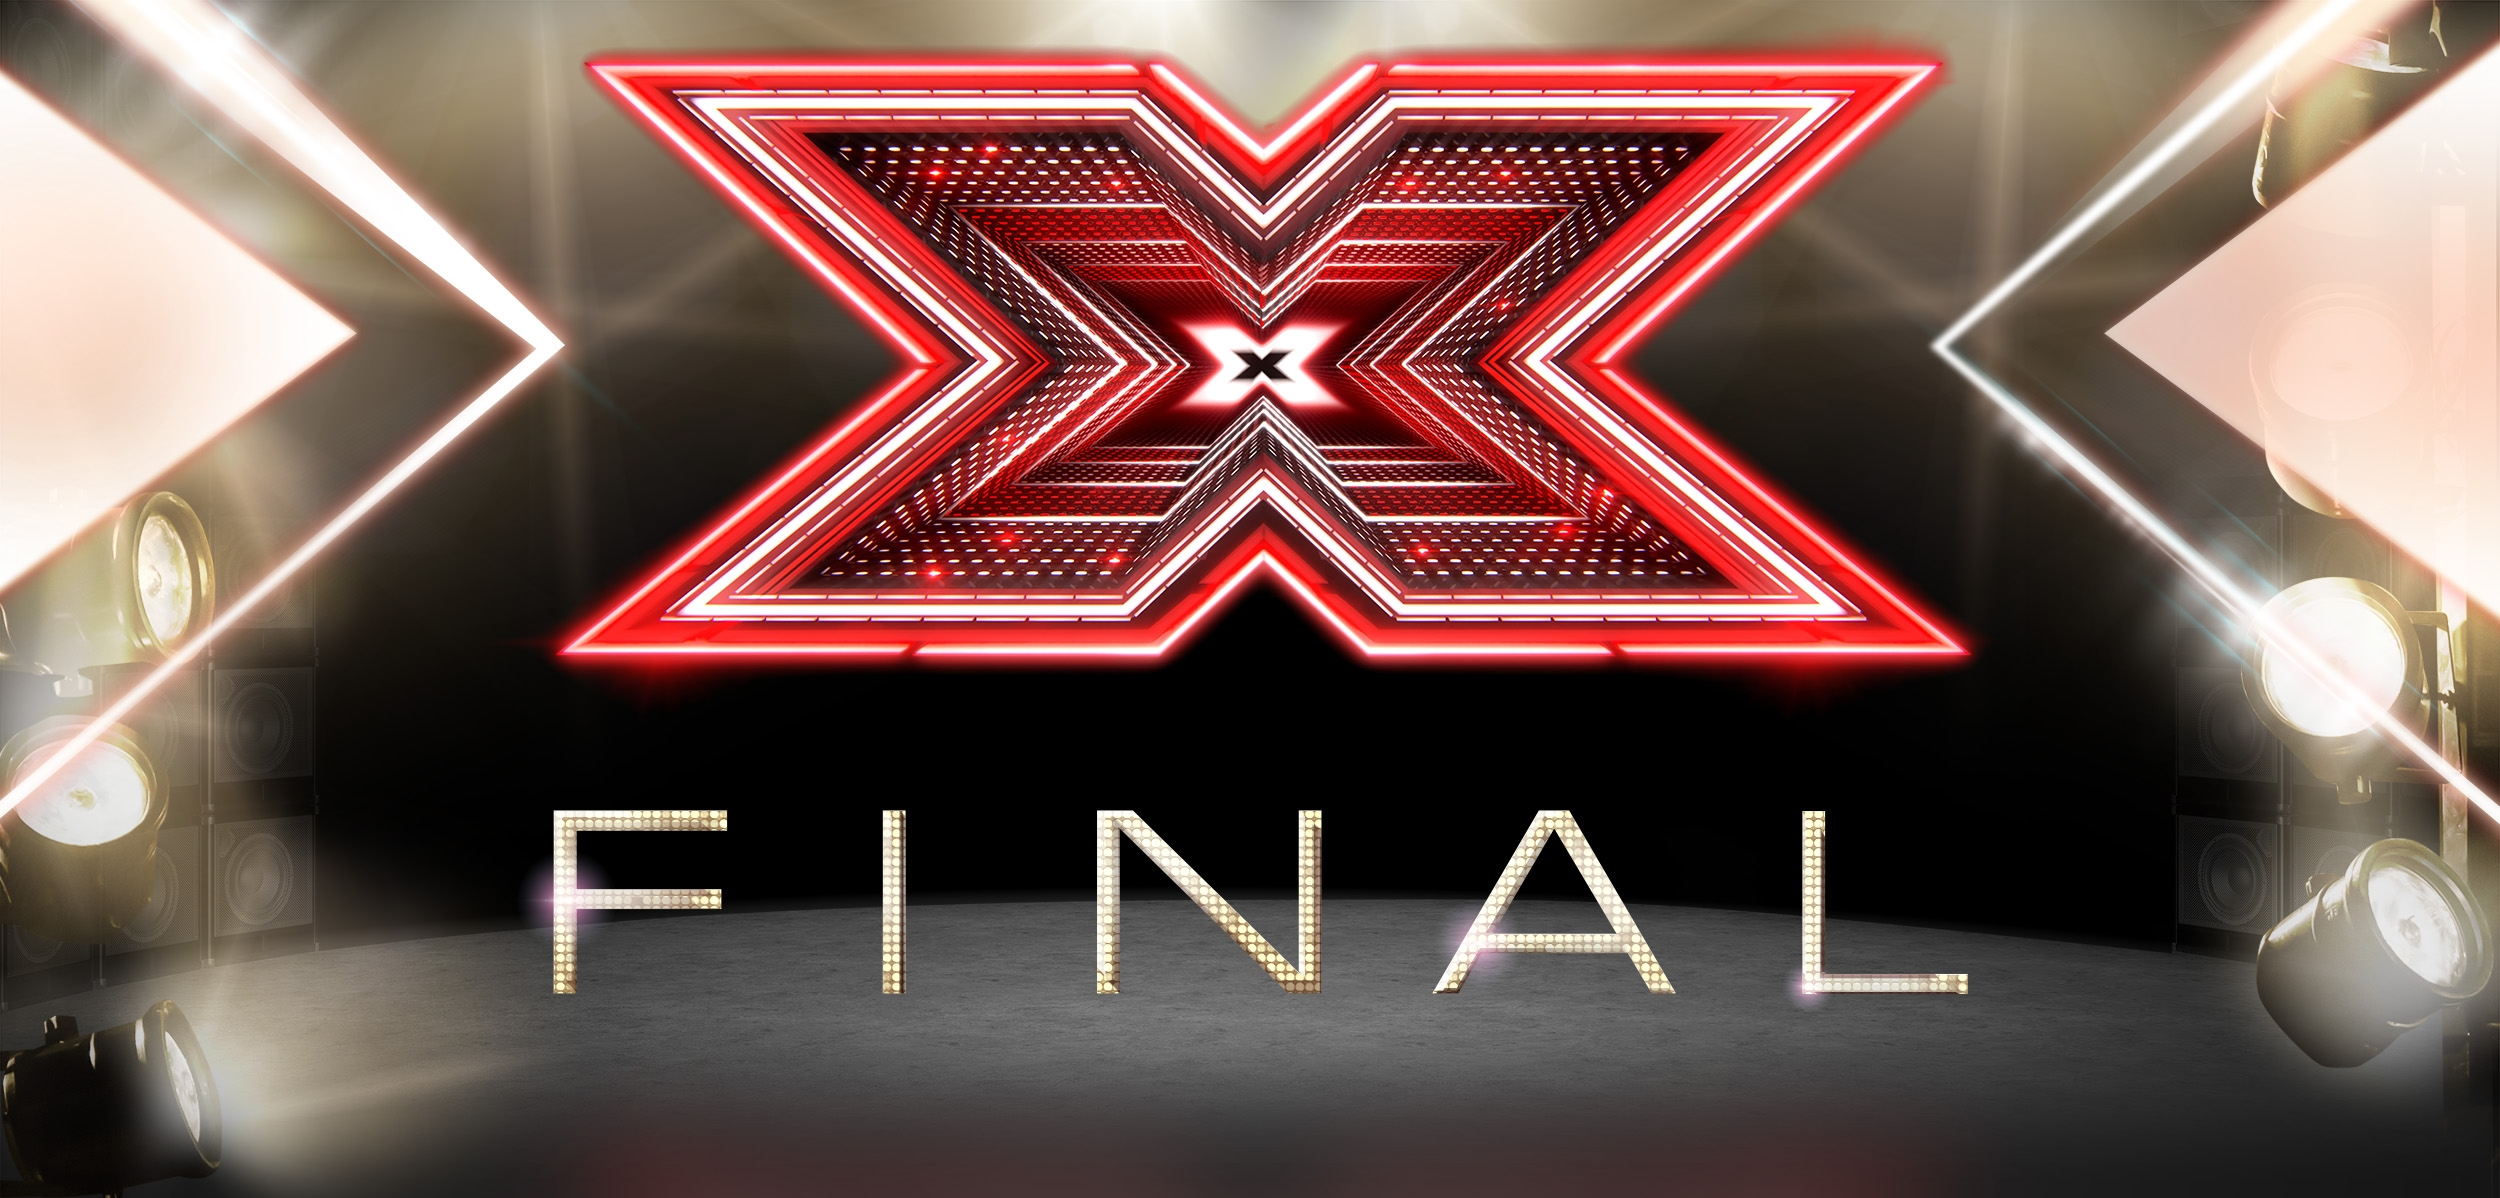 Core brand background for The X Factor Final VIP party